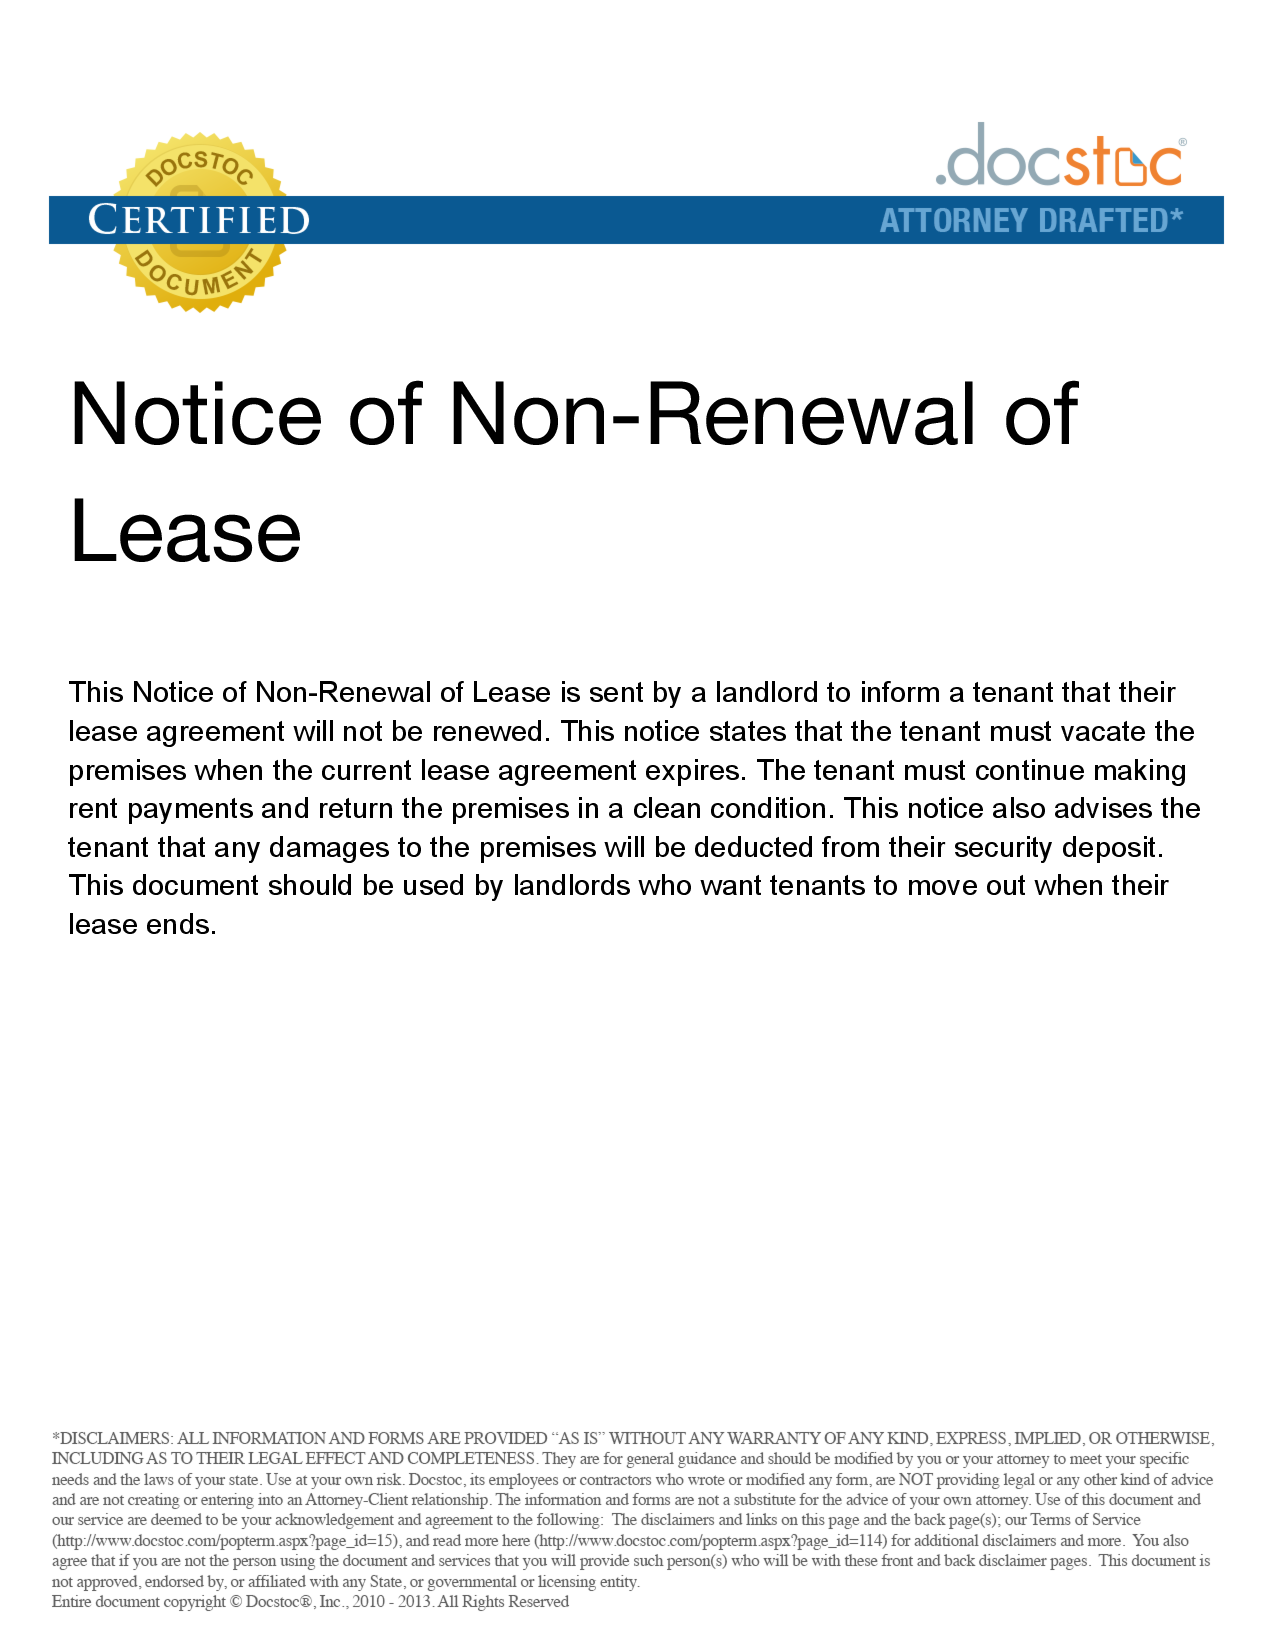 png nonrenewal of lease letter legal documents landlord s notice of non r landlord tenant notices re renewal notice letter sample bag lease renewal tar 2217 notice